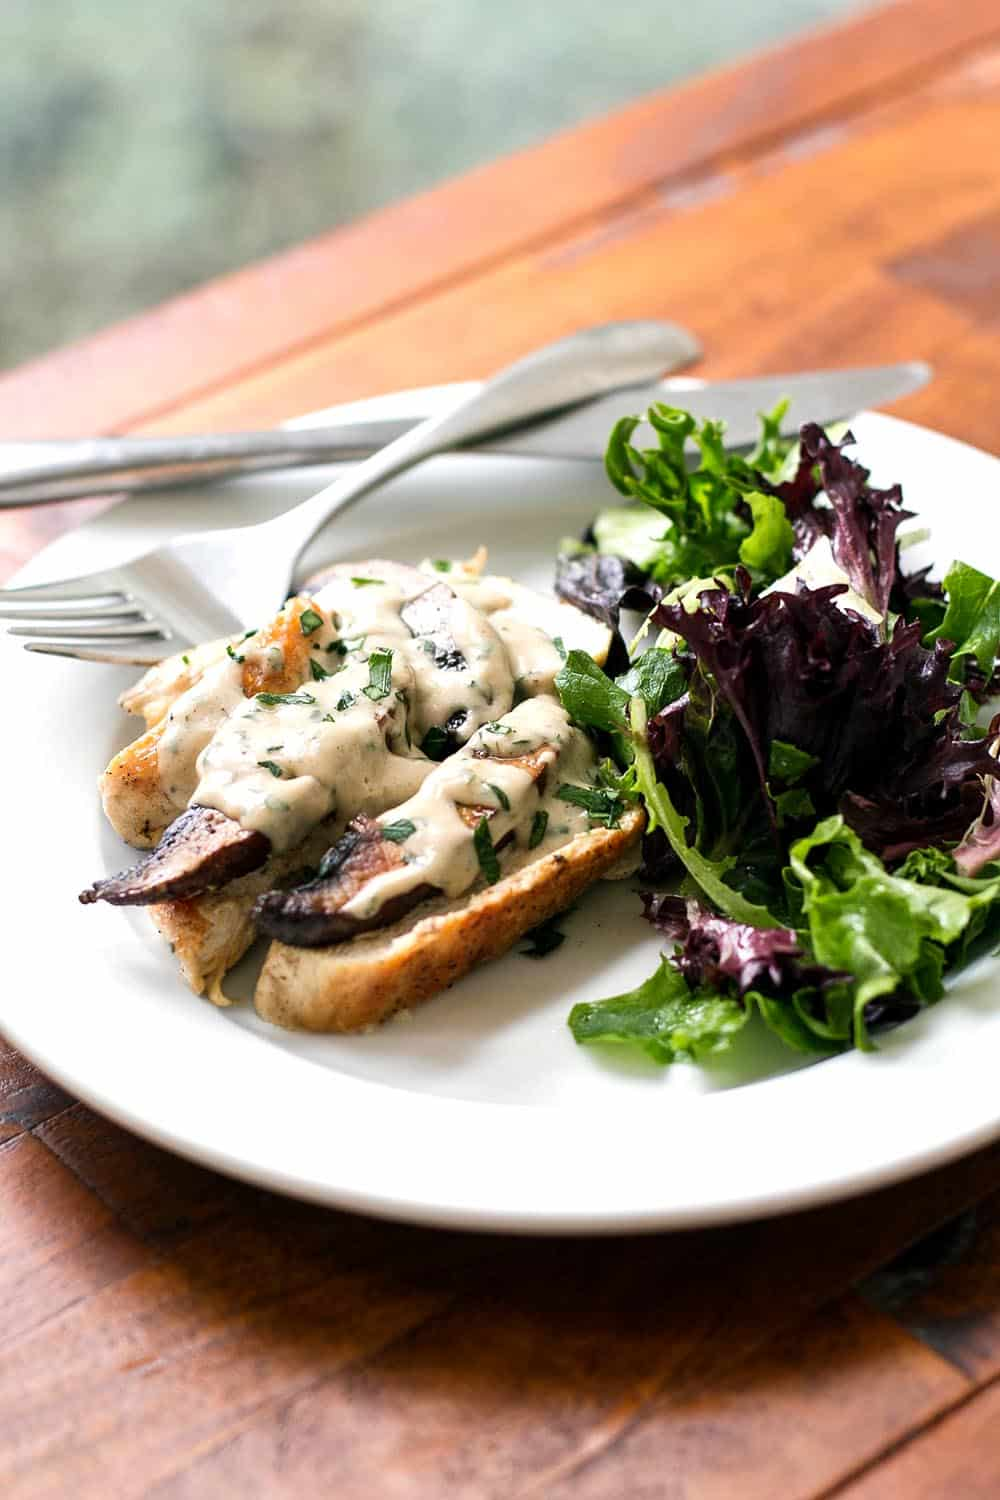 Chicken and Mushroom Supreme on a white plate with salad